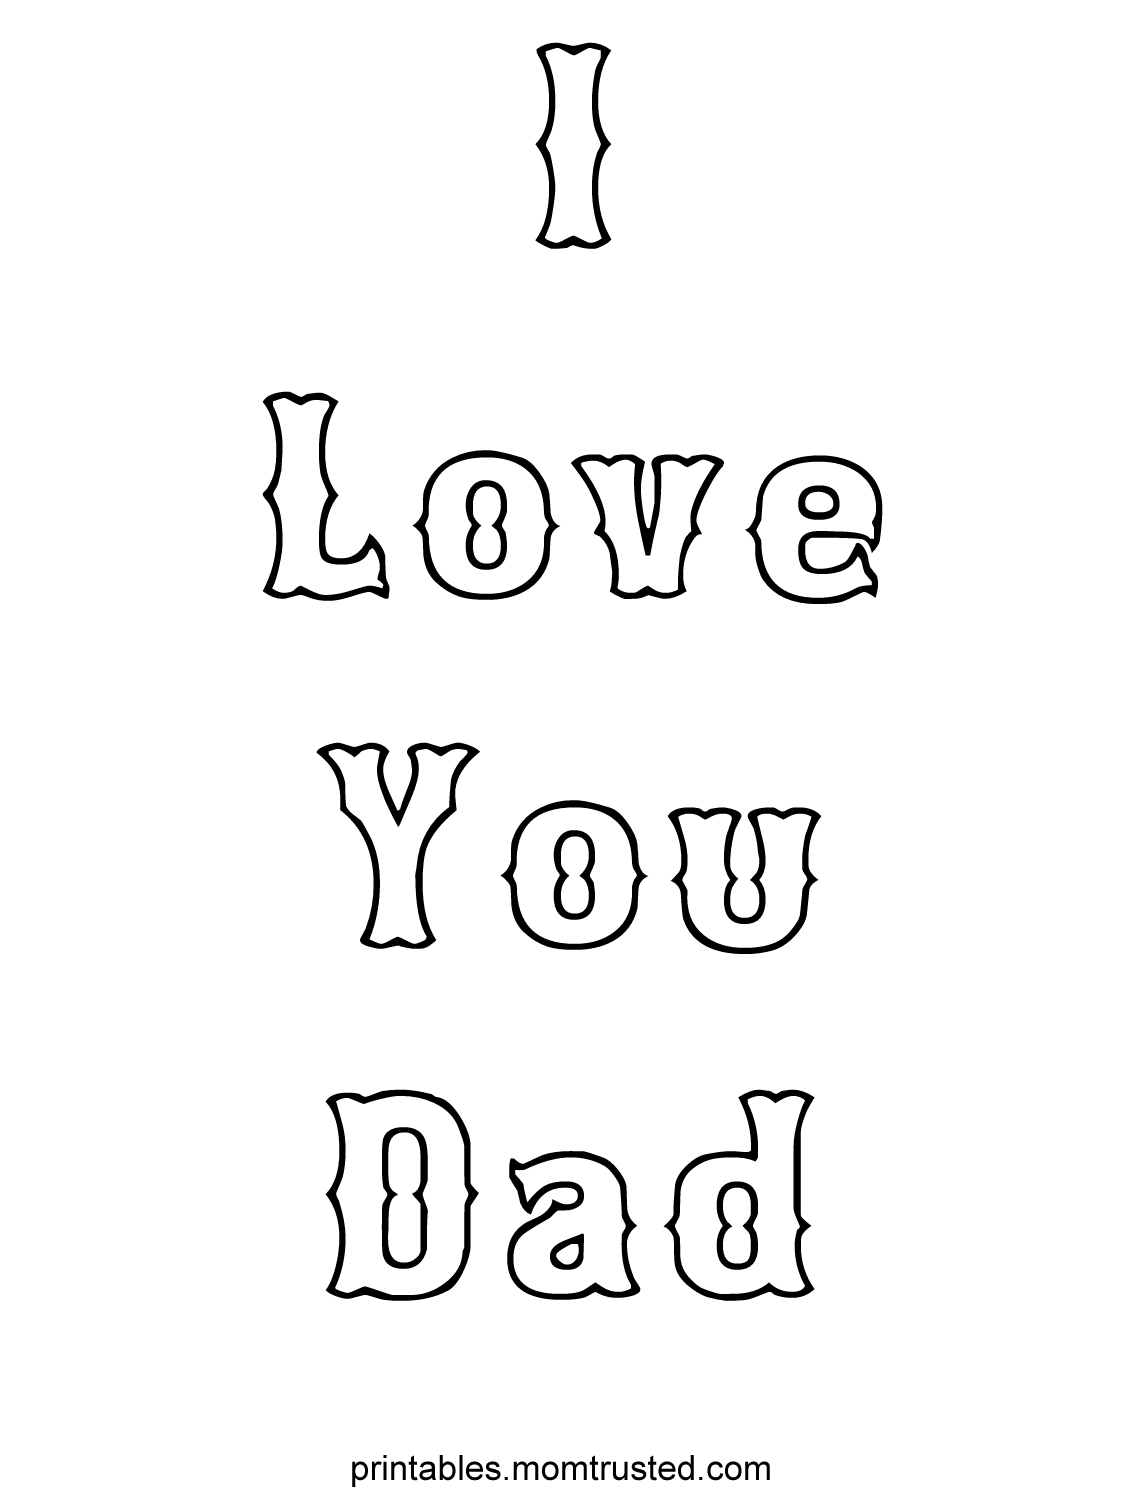 i love you mom and dad pictures i love you dad happy fathers day friend love you dad pictures i dad love you and mom